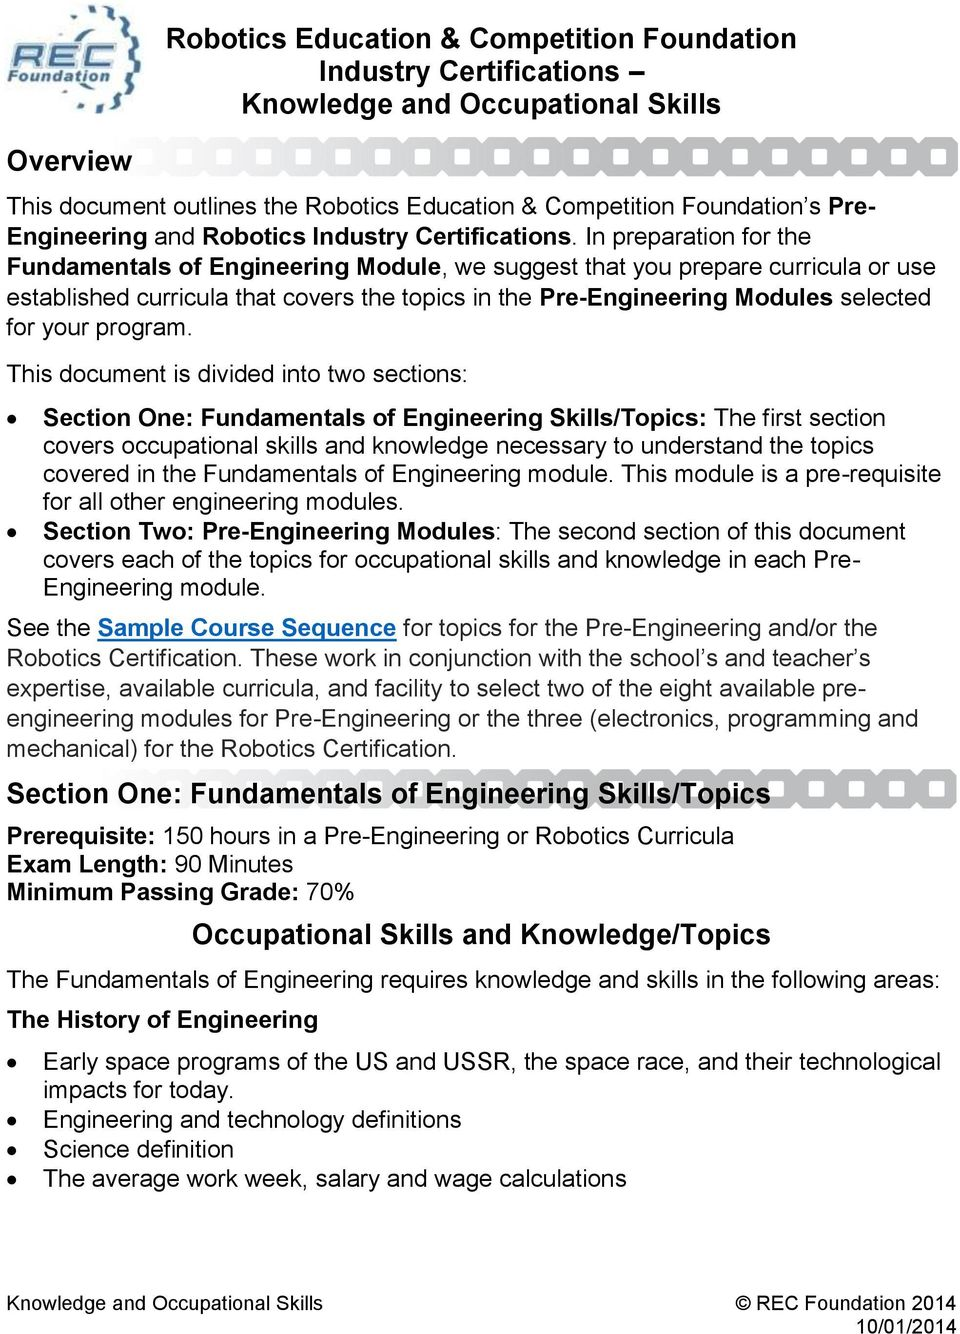 Robotics Education Competition Foundation Industry Certifications